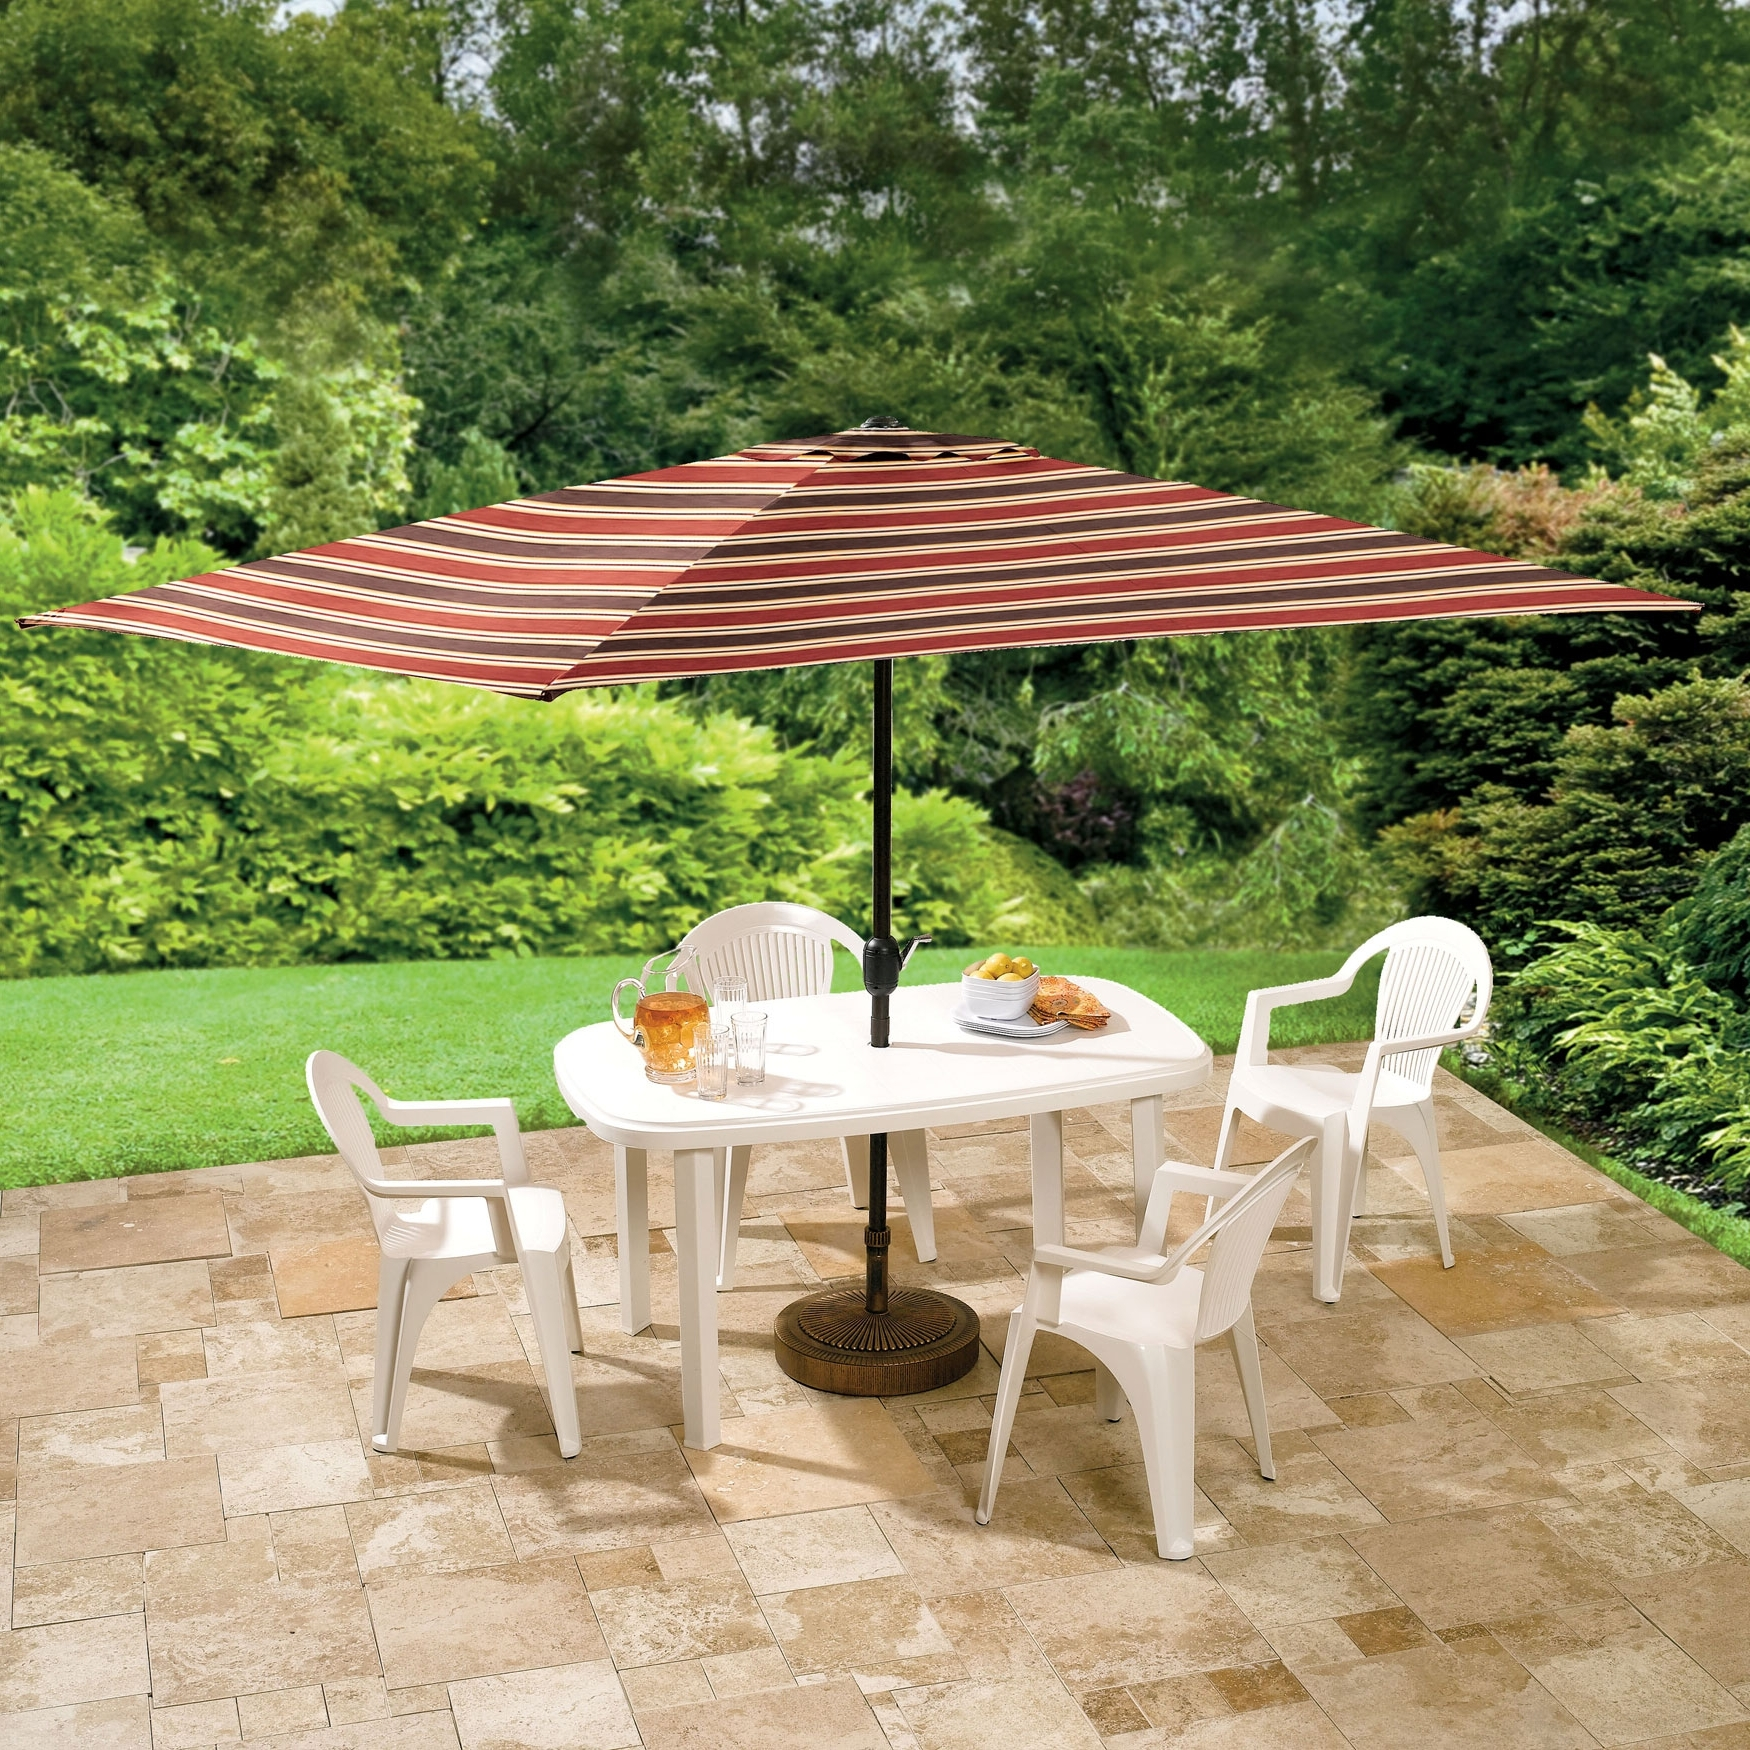 Offset Rectangular Patio Umbrella : Rectangular Patio Umbrella Intended For Popular Offset Rectangular Patio Umbrellas (View 18 of 20)